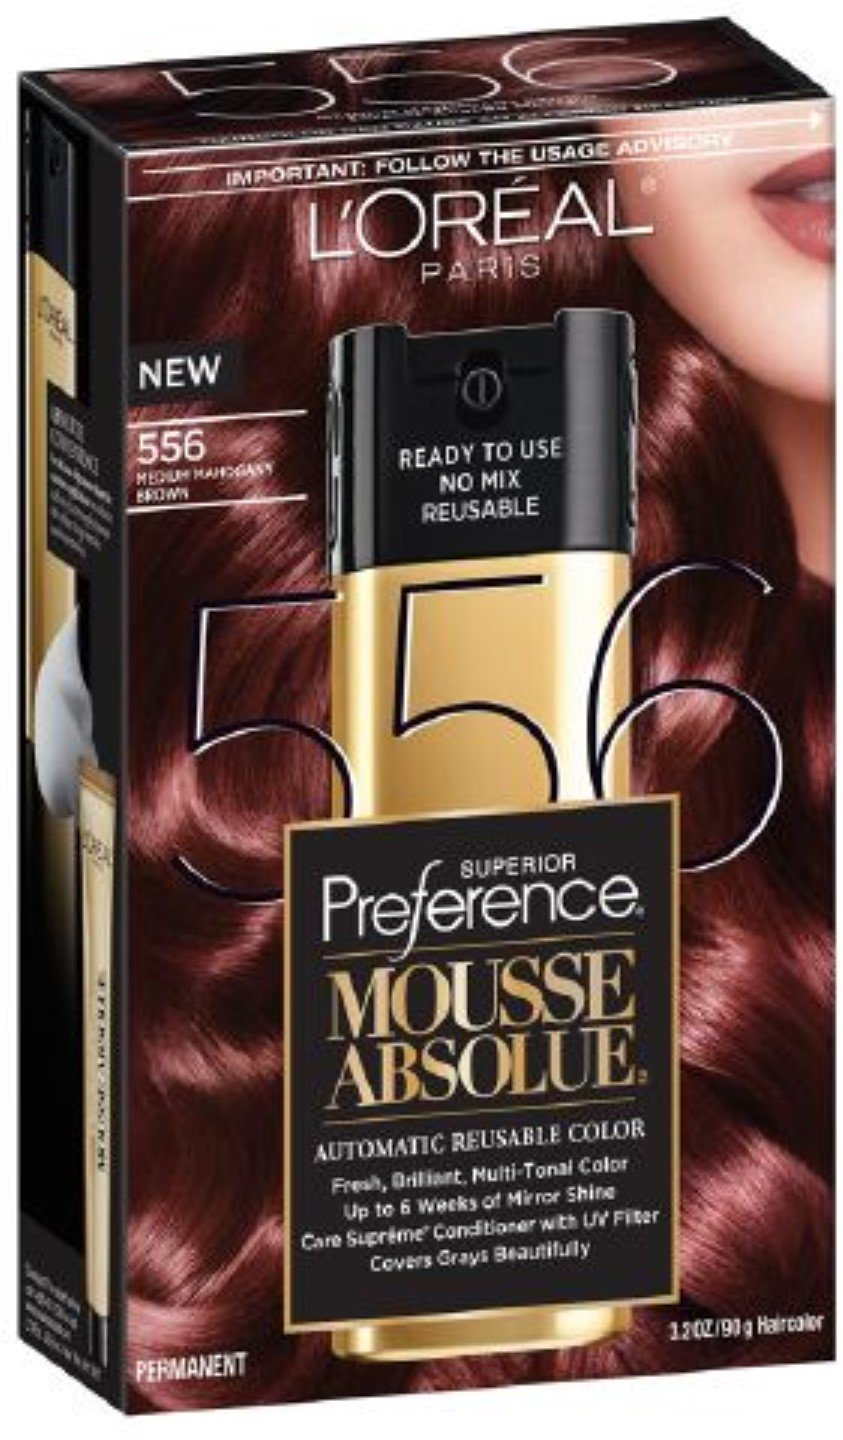 L'Oreal Paris Superior Preference Mousse Absolue Automatic Reusable Color, Medium Mahogany Brown [556] 3.2 oz (Pack of 2)